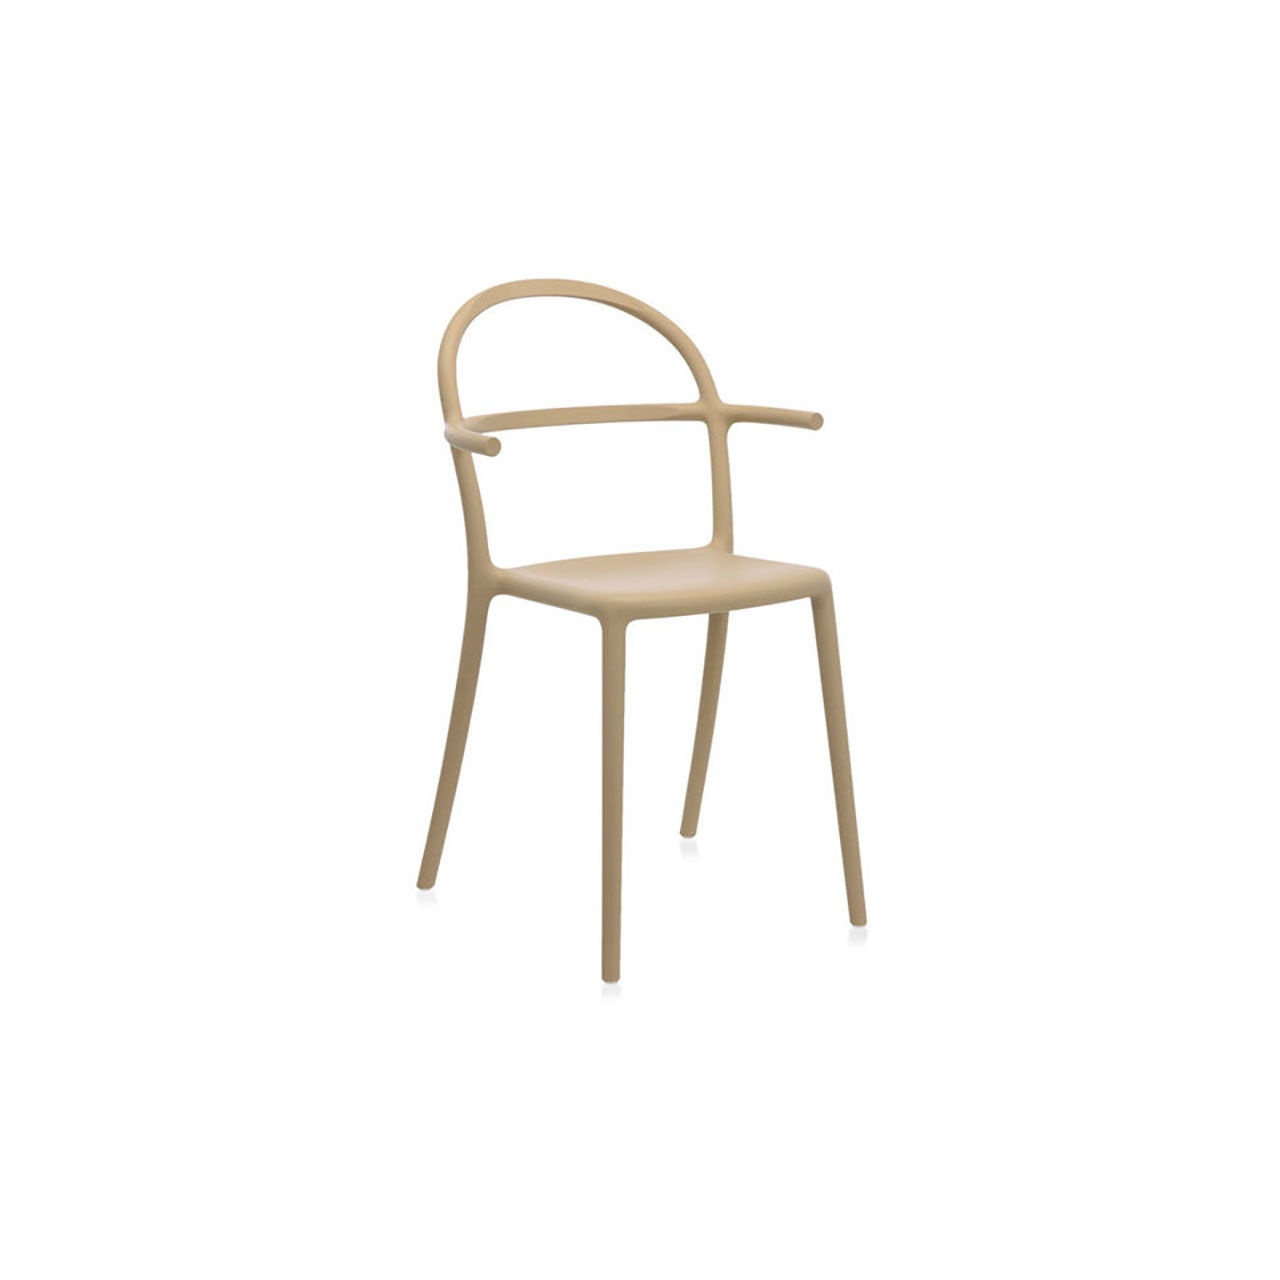 Generic Chair C Set of 2 in Dove by Kartell